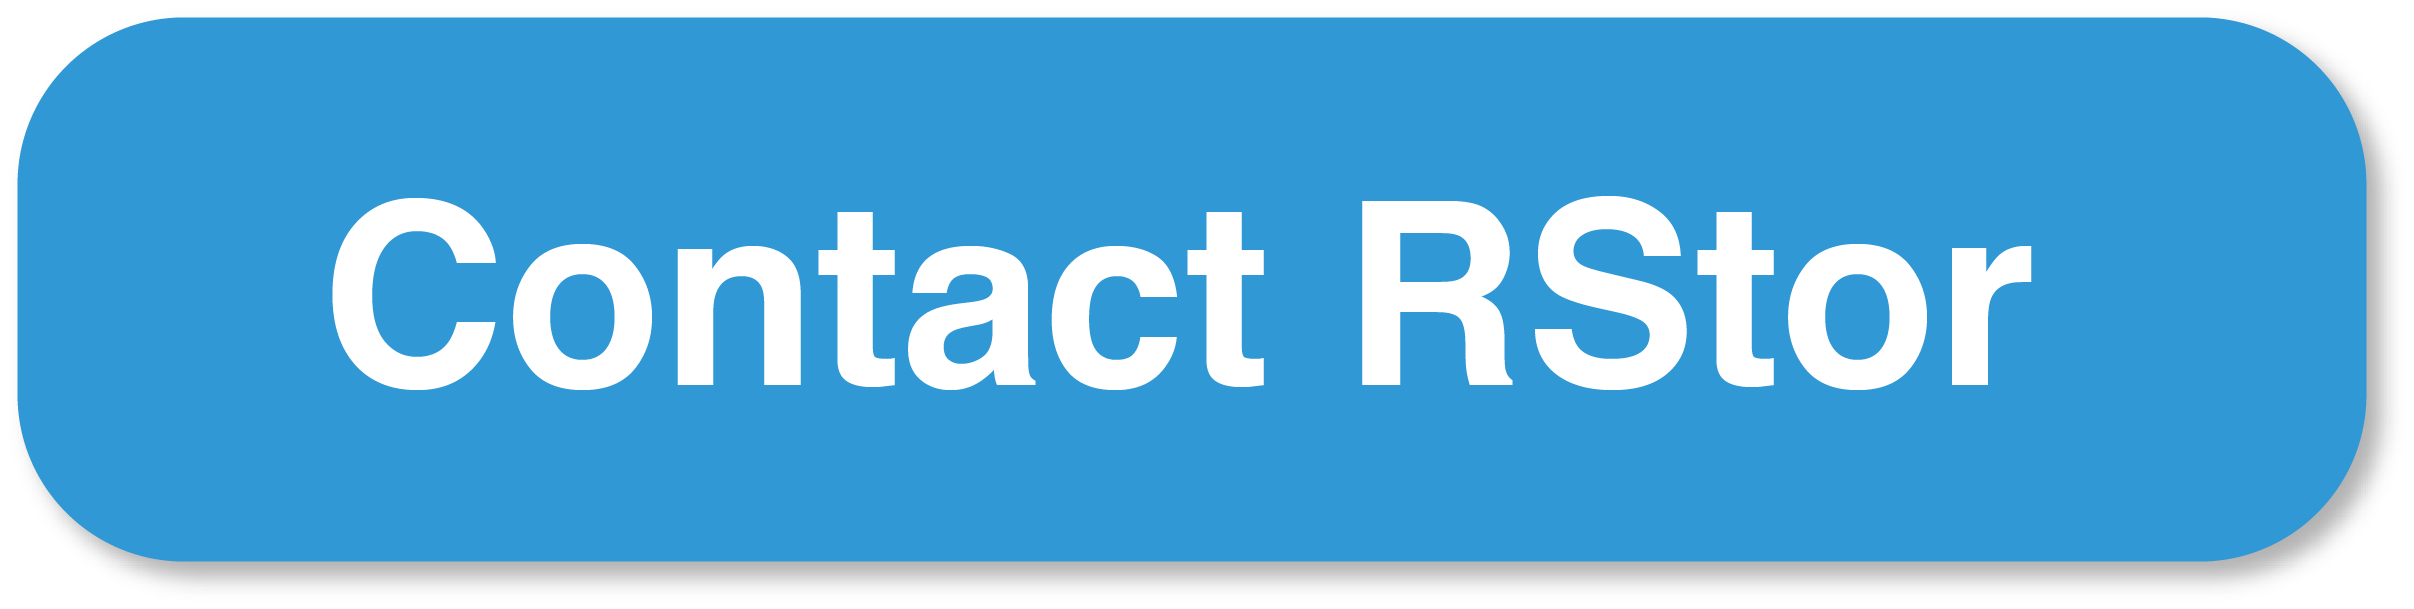 Contact RStor